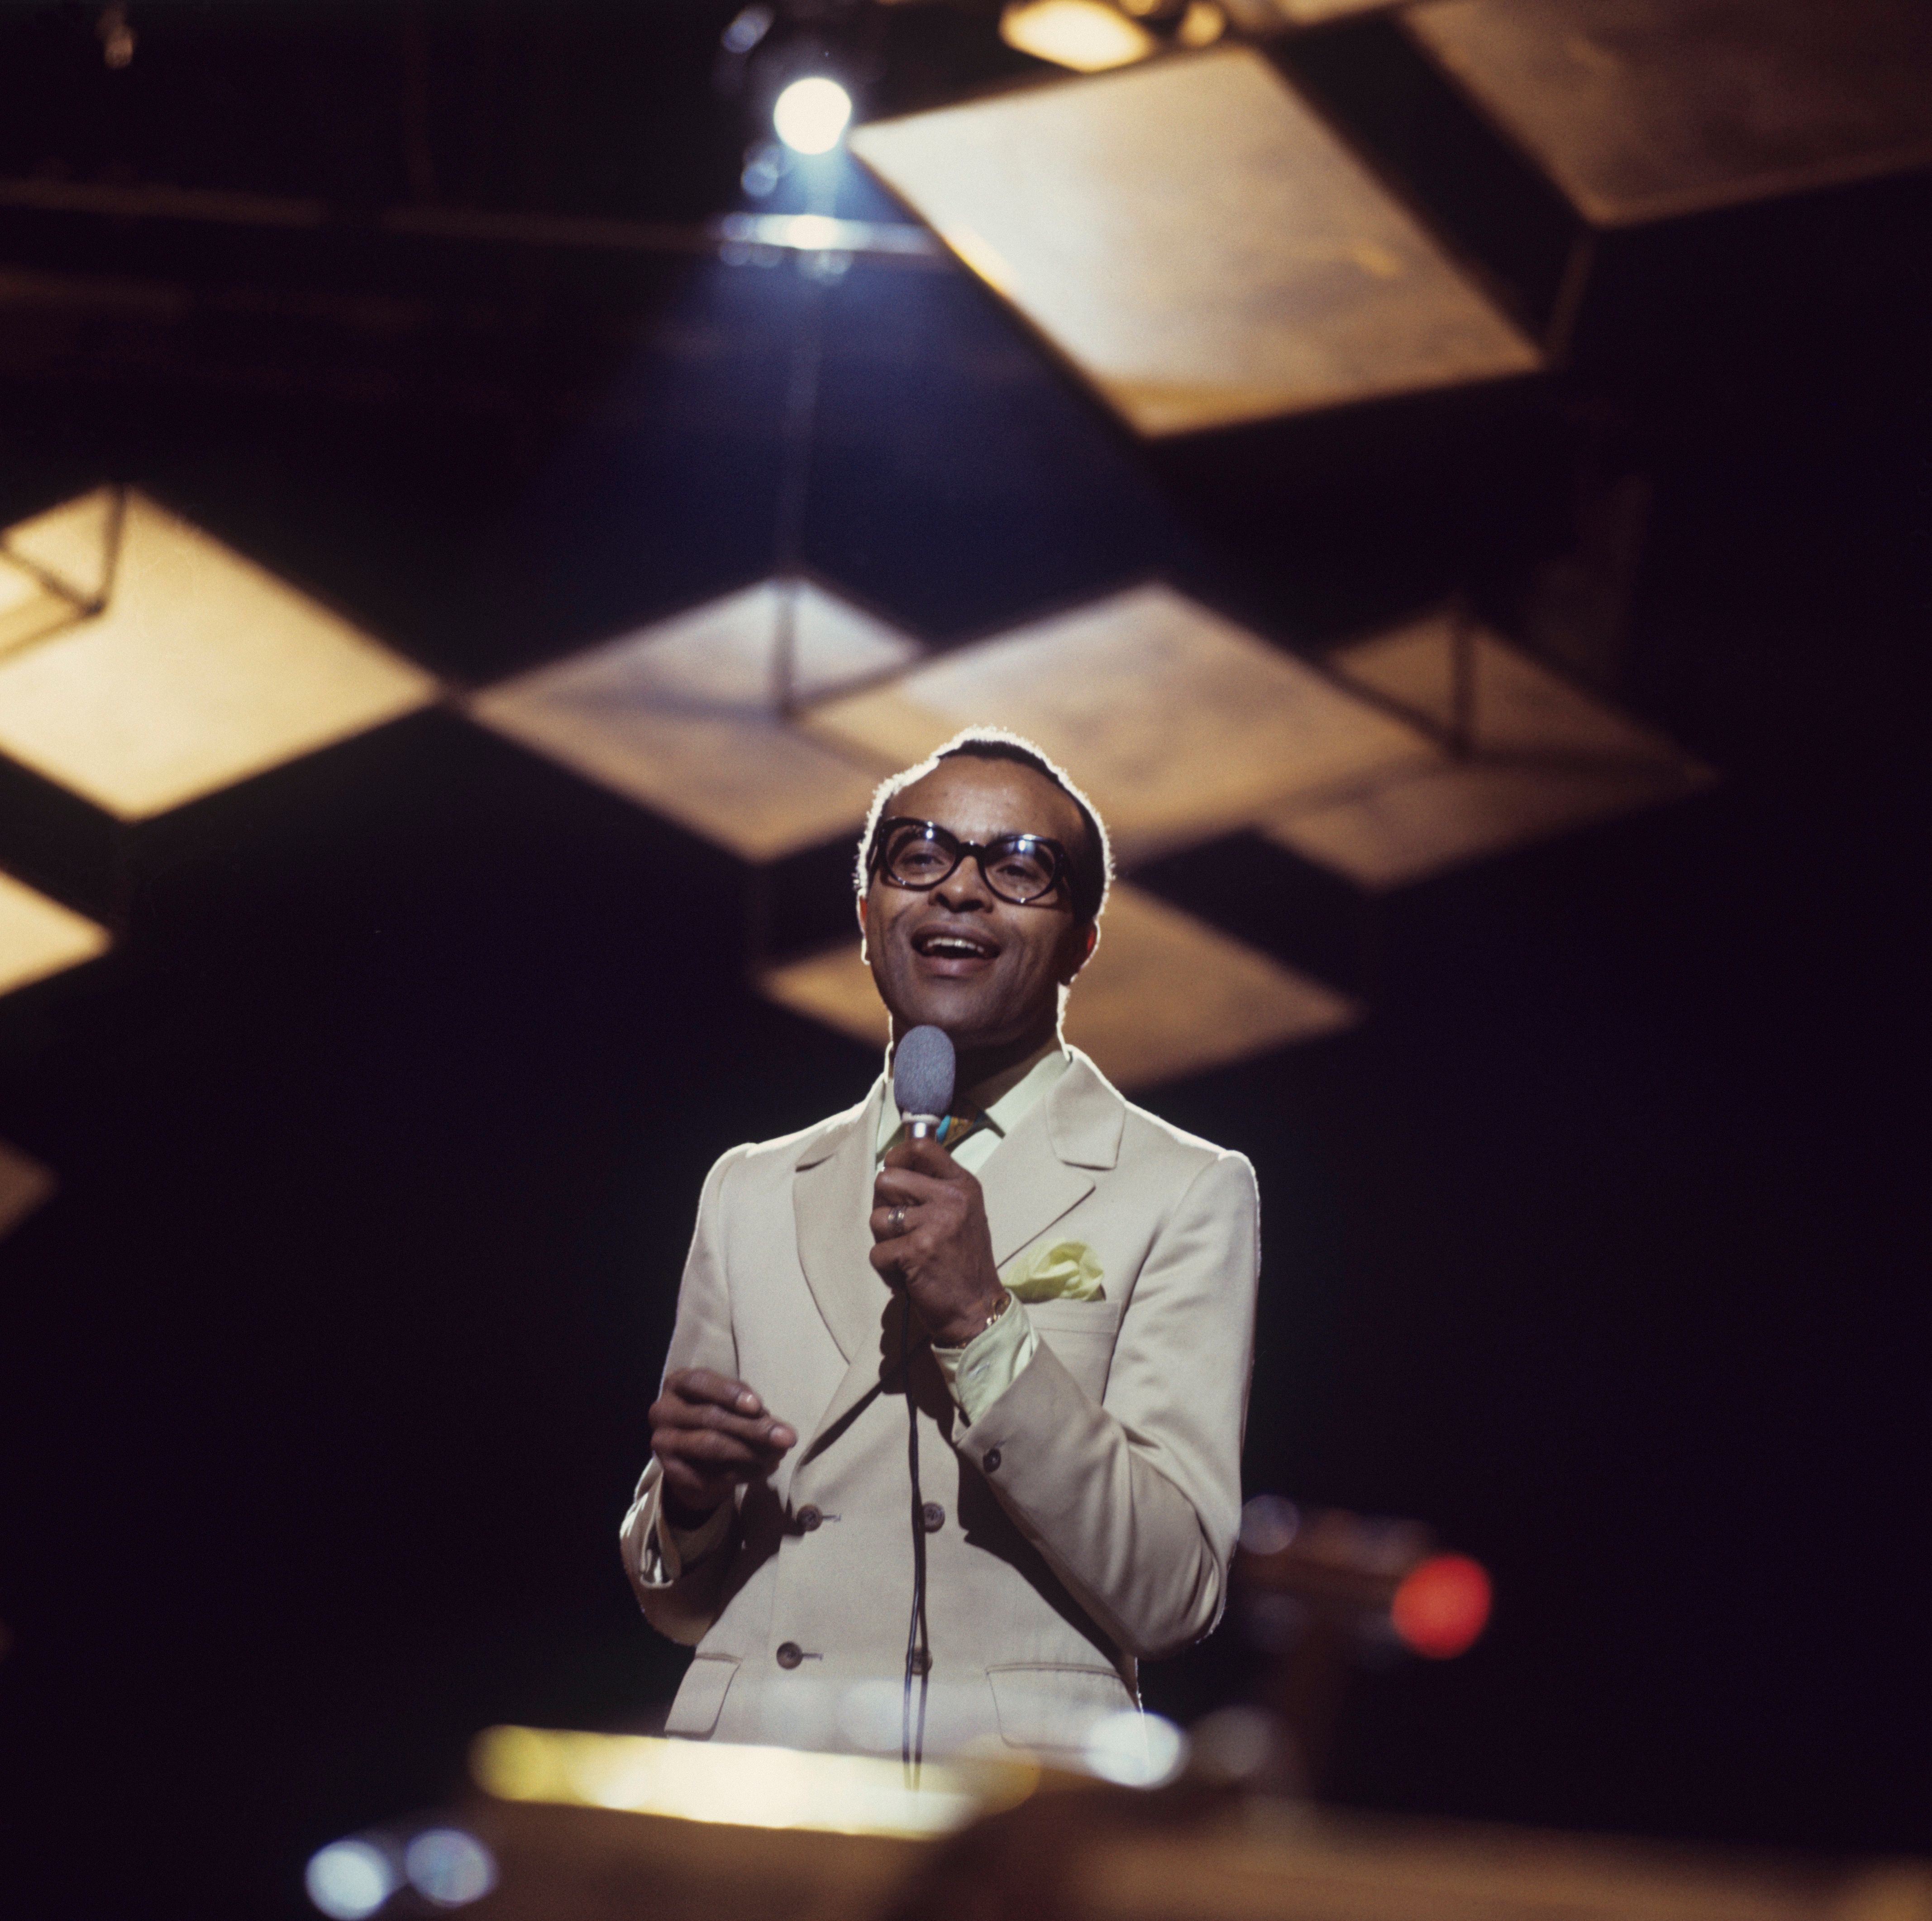 UNSPECIFIED - JANUARY 01: American jazz singer Jon Hendricks performs on stage circa 1970. (Photo by David Redfern/Redferns)